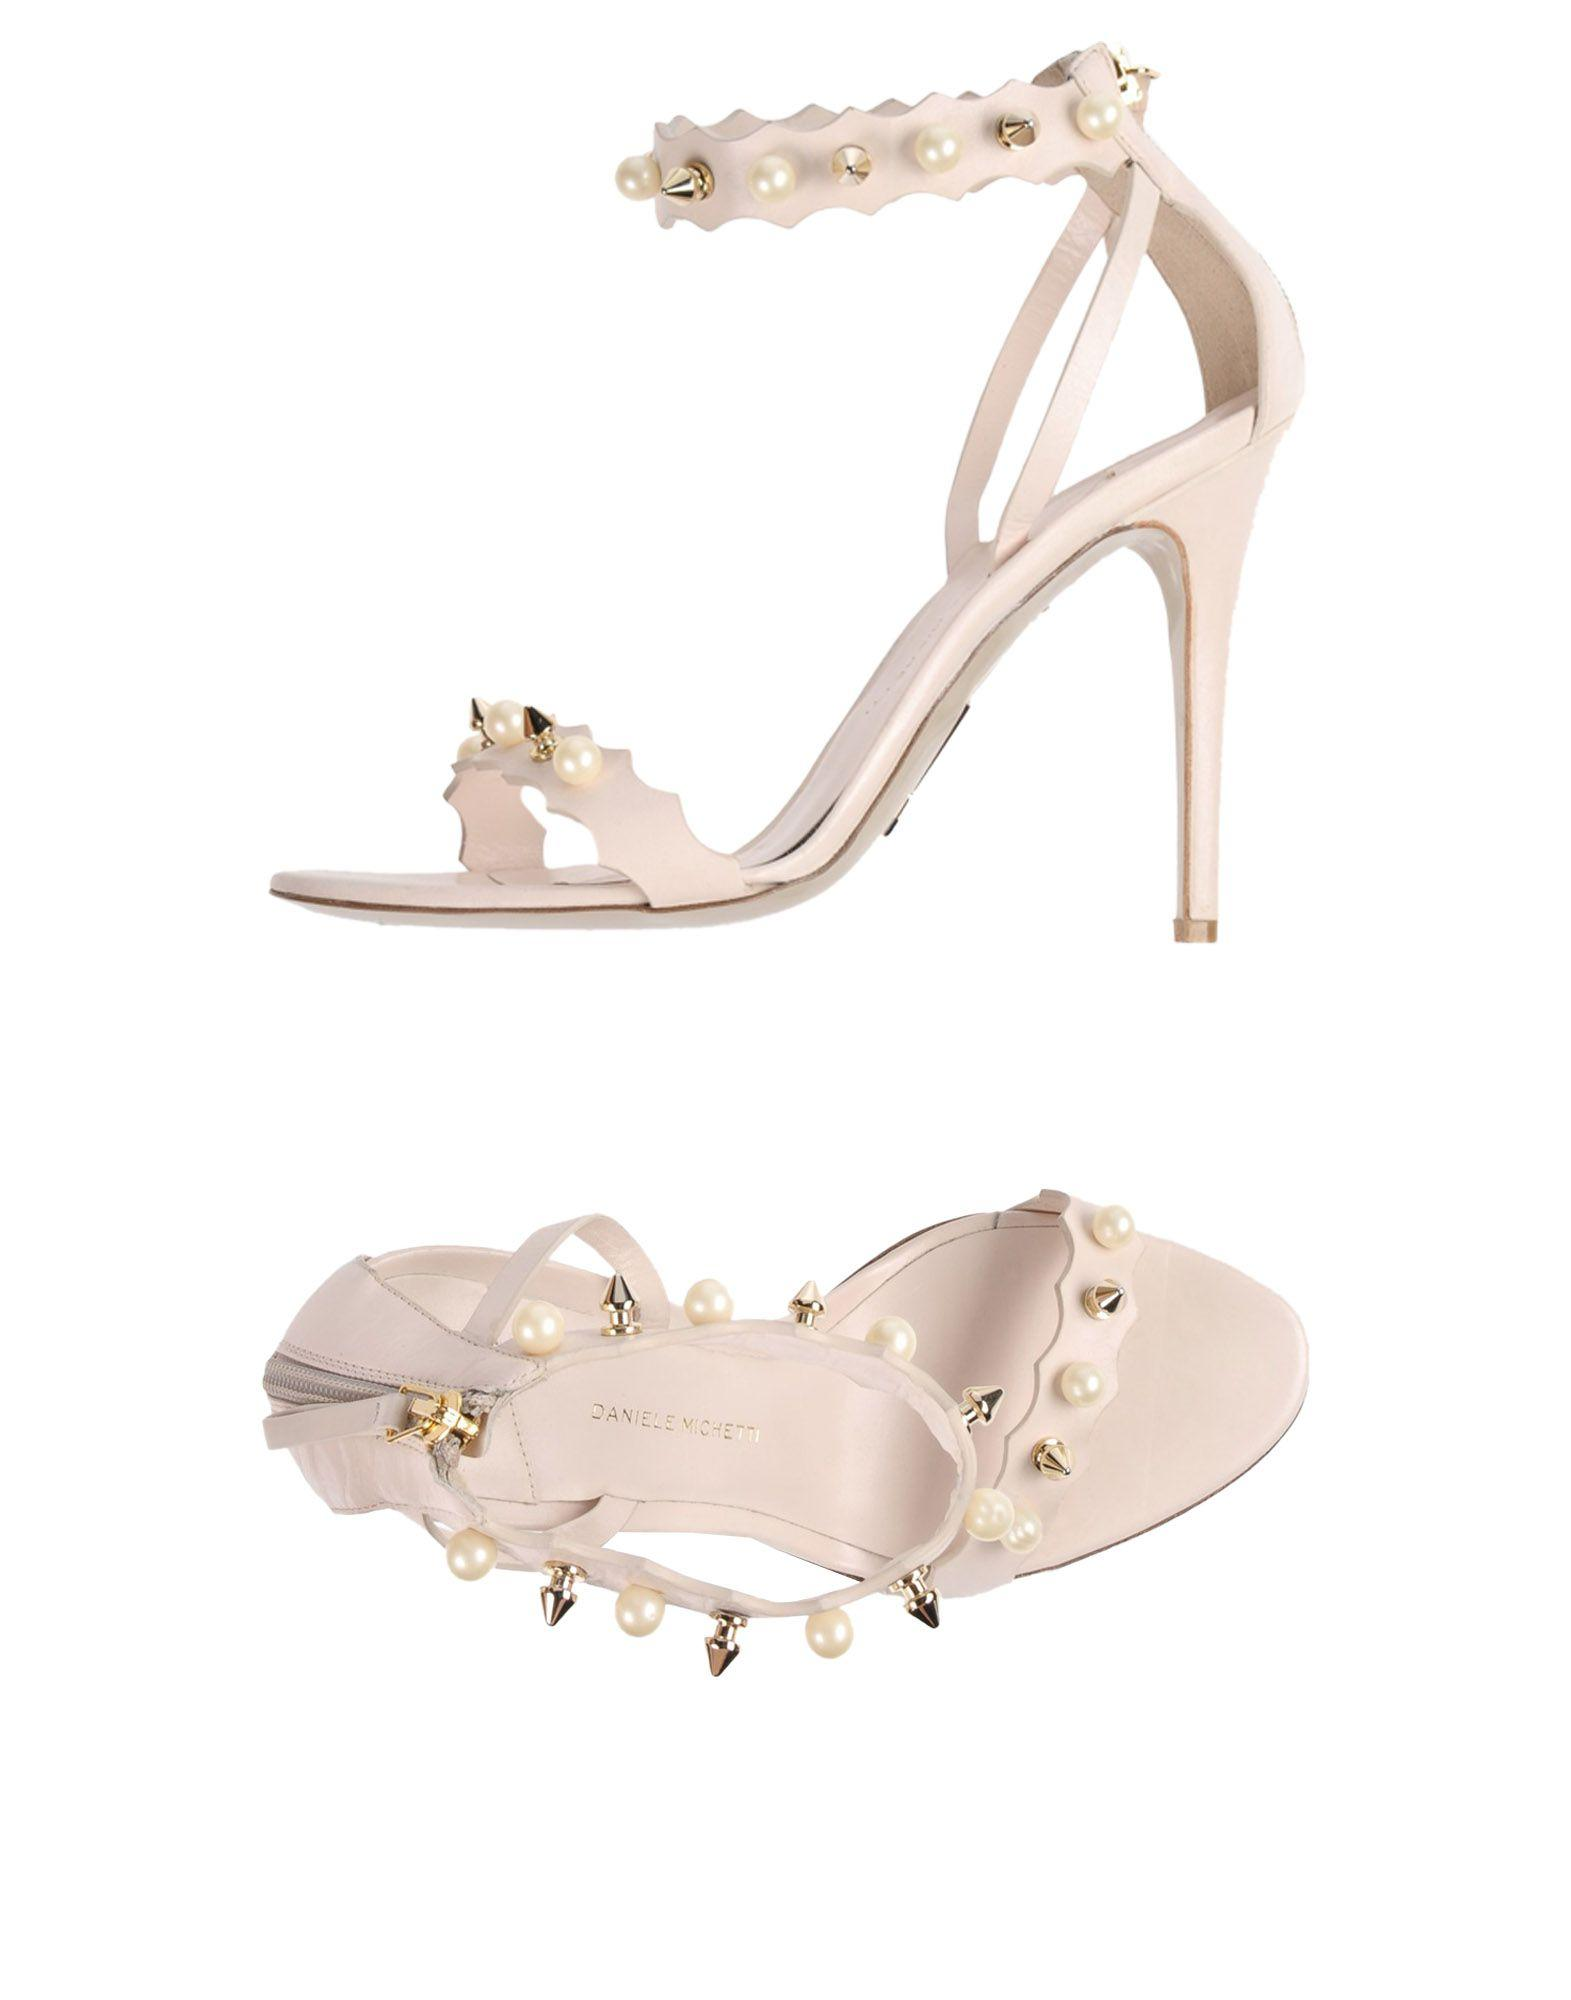 Daniele Michetti Sandals In Beige